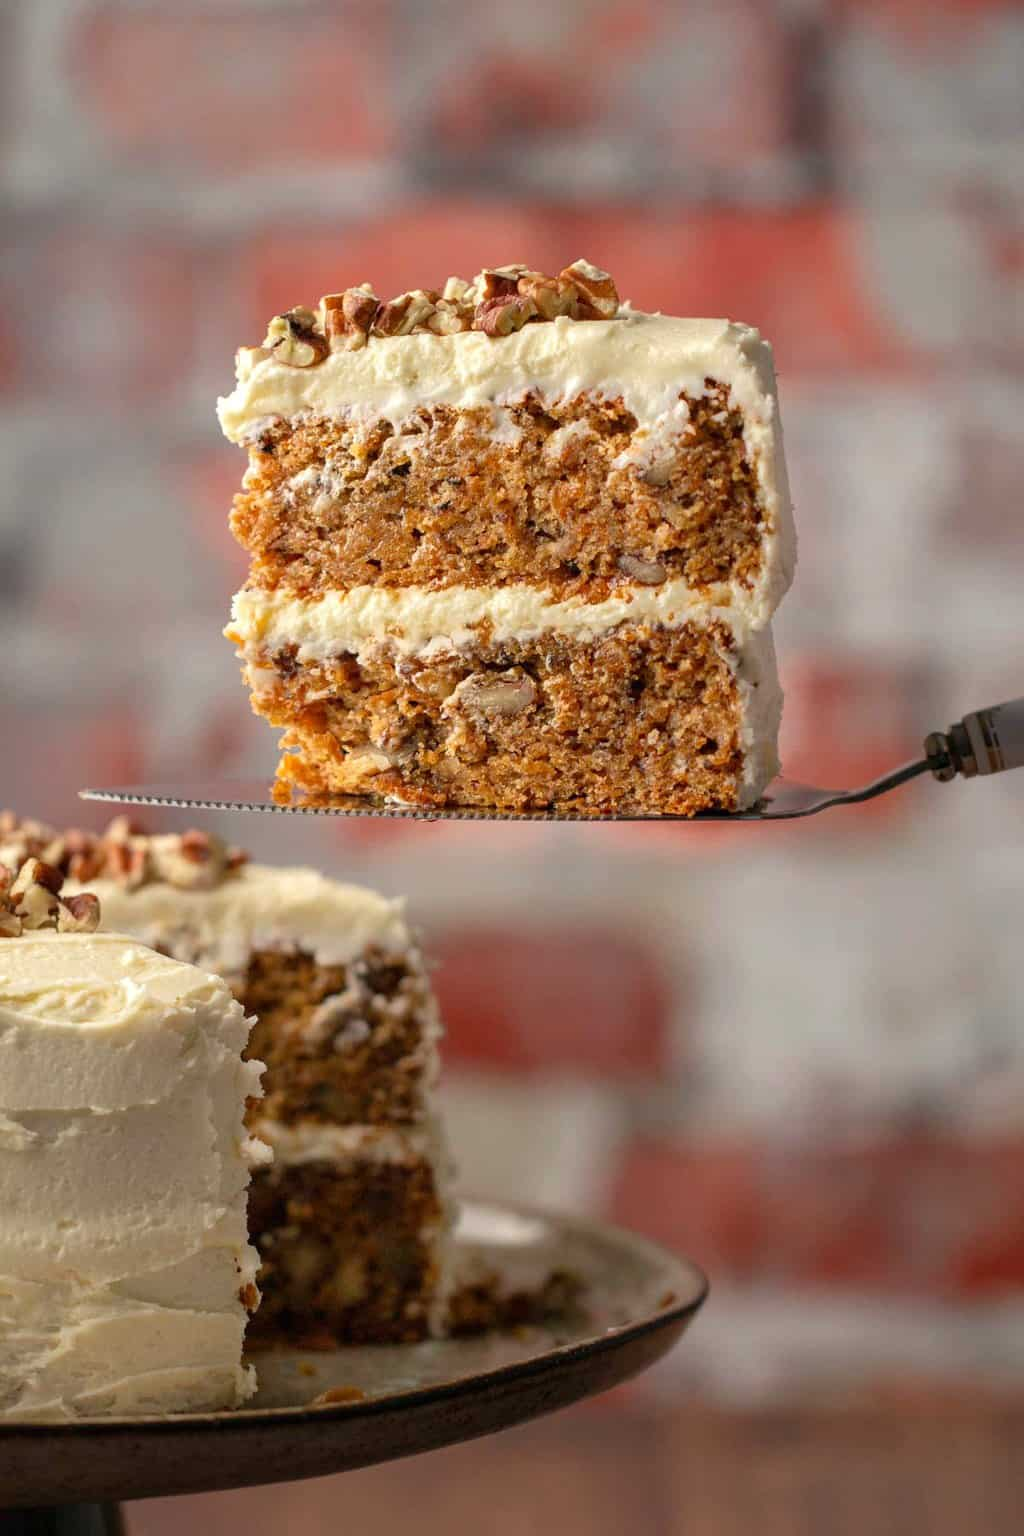 Vegan gluten free carrot cake slice on a cake lifter.